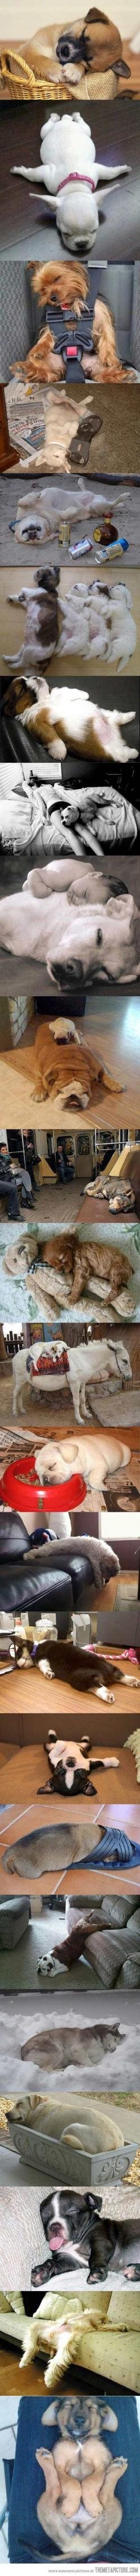 This makes me smile.  Forever.: Doggie, Sleeping Dogs, Animals, Pet, Sleepy Puppies, Puppys, Baby, Sleep Attack, Sleeping Puppies